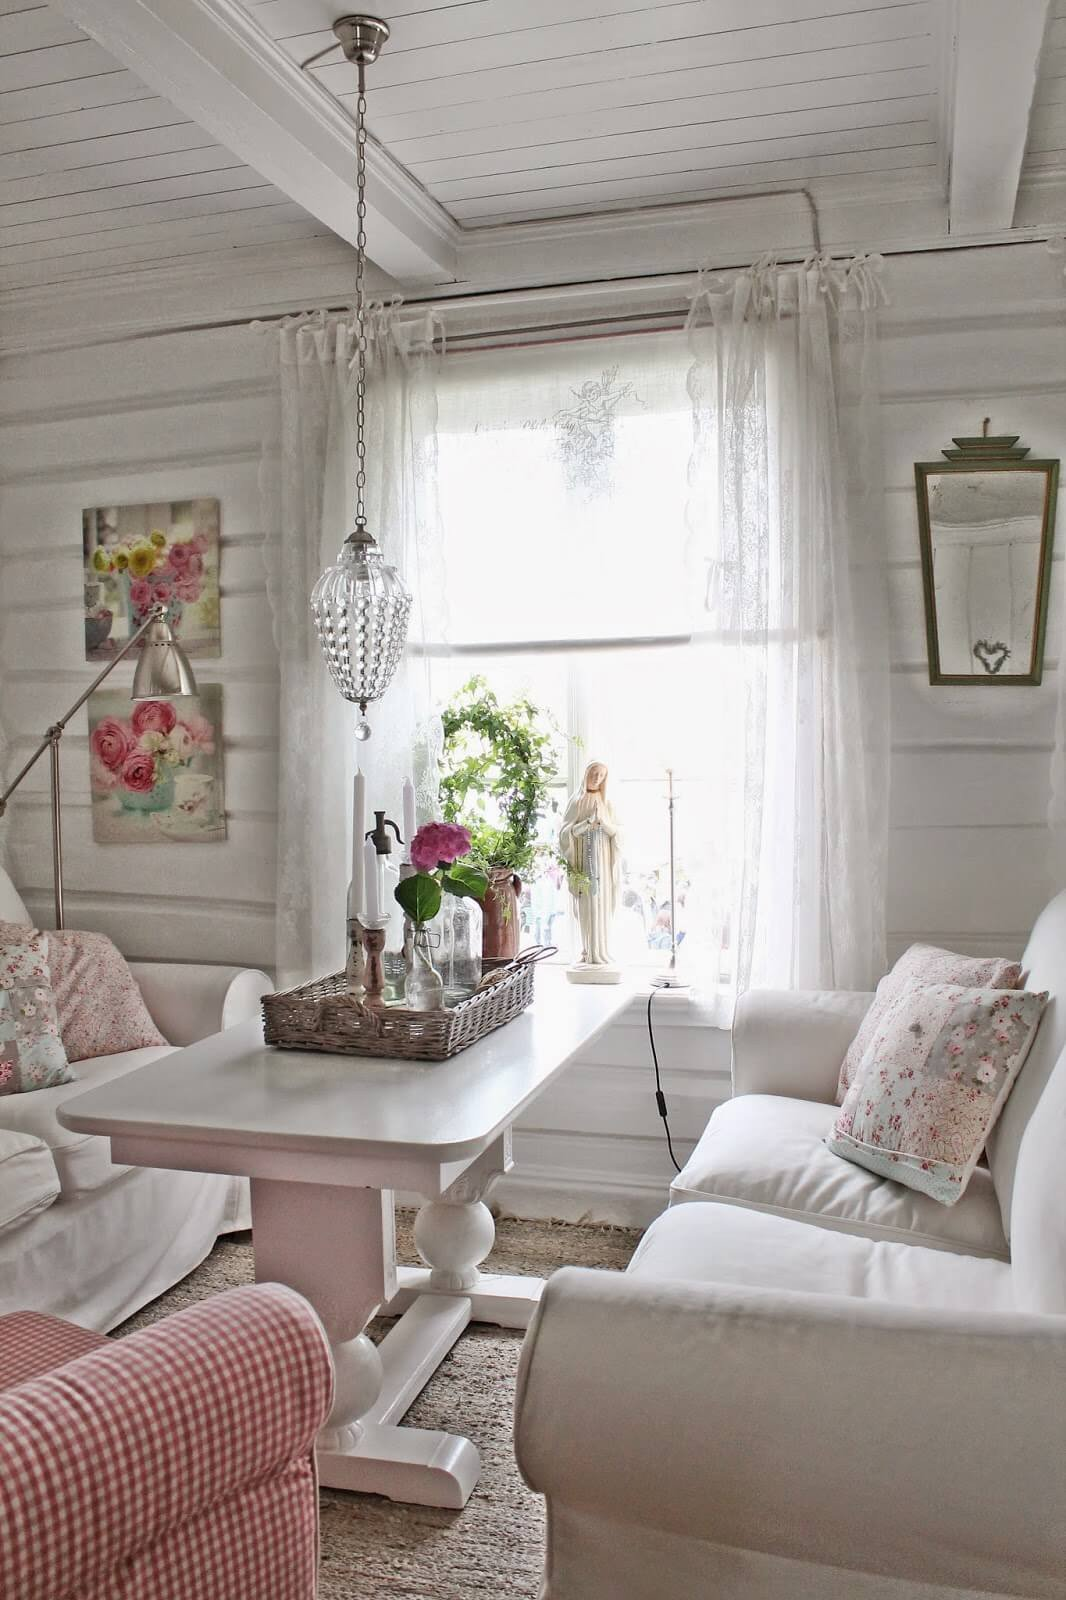 Chic Small Living Room Ideas Elegant 32 Best Shabby Chic Living Room Decor Ideas and Designs for 2019